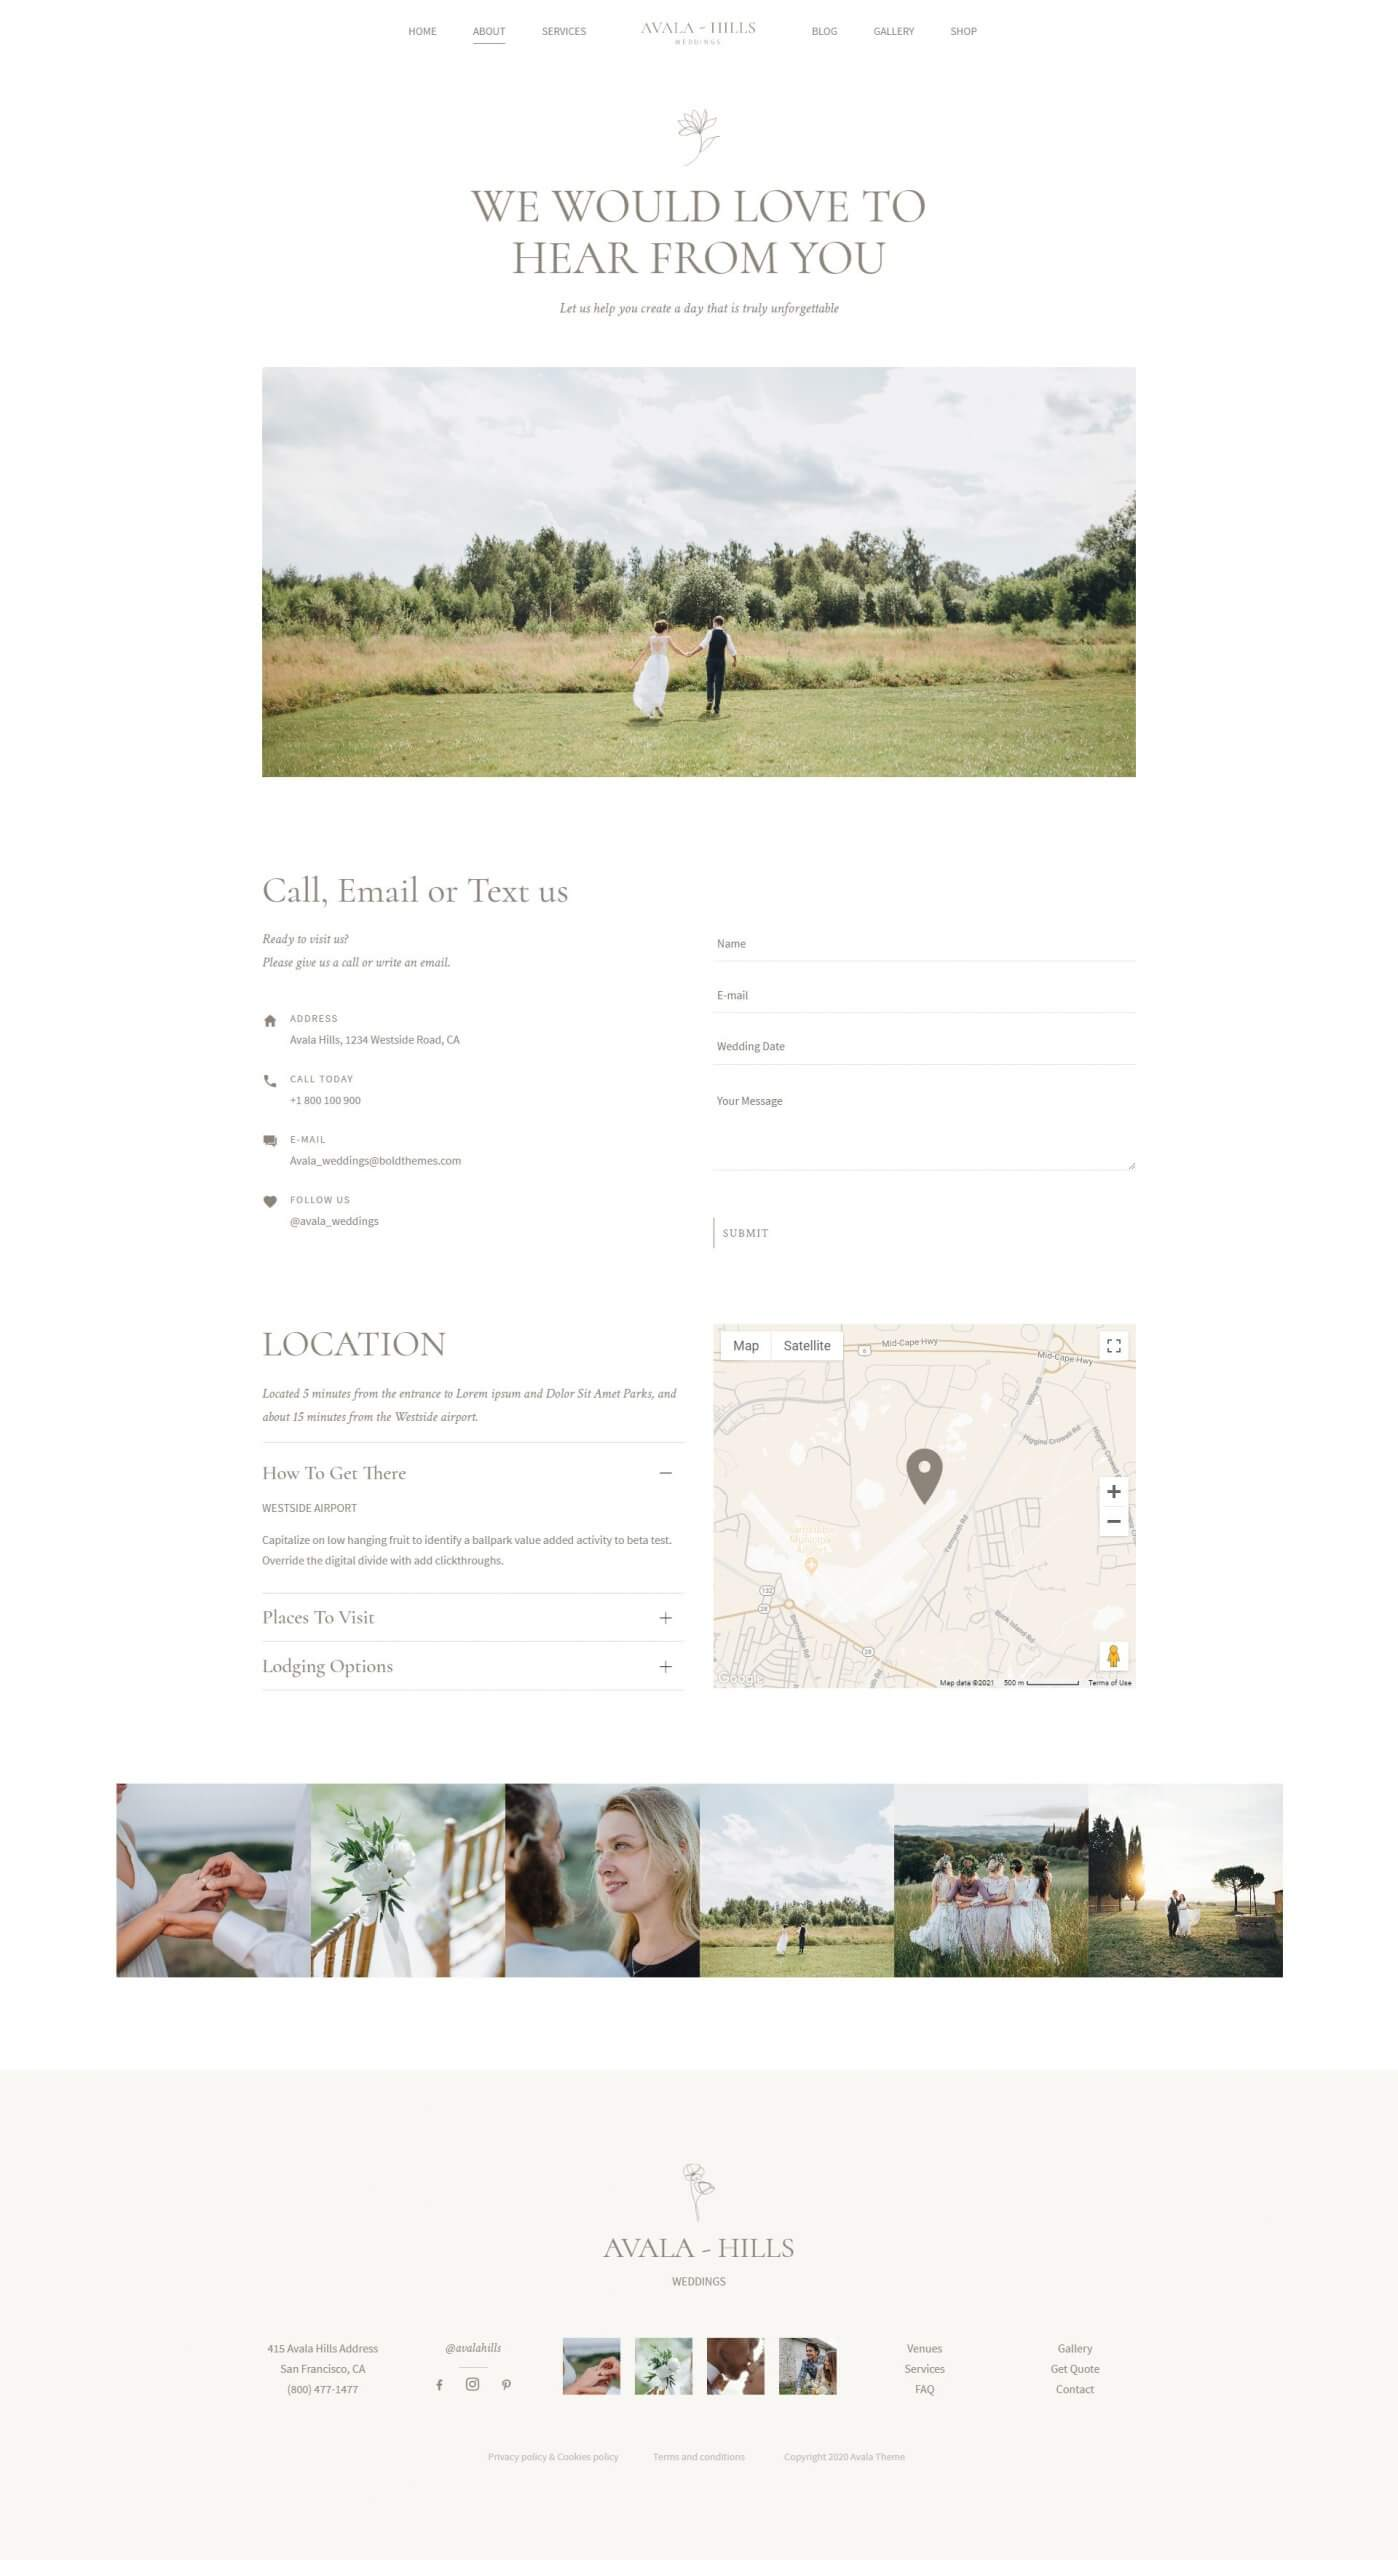 http://avala.bold-themes.com/wp-content/uploads/2021/02/Autumn-Contact-Location-scaled.jpg